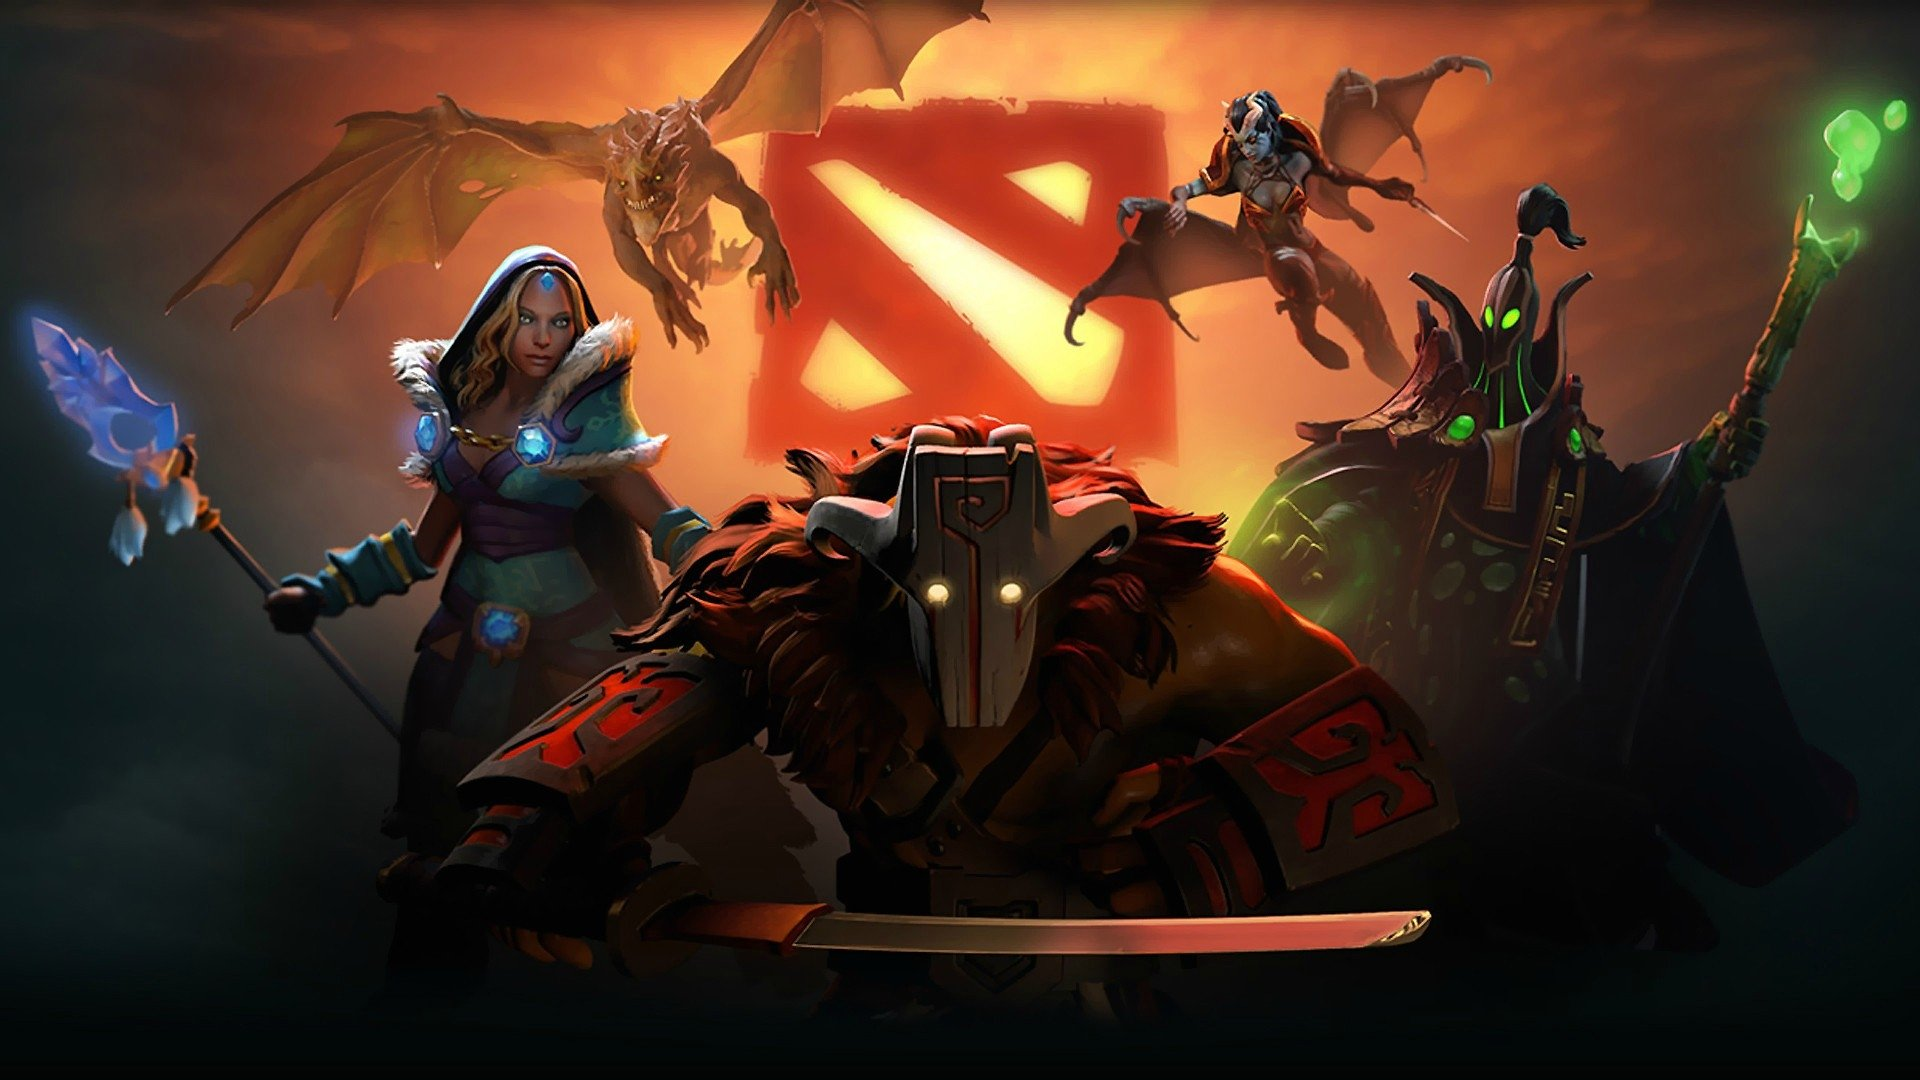 Wallpaper Dota 2 Full HD